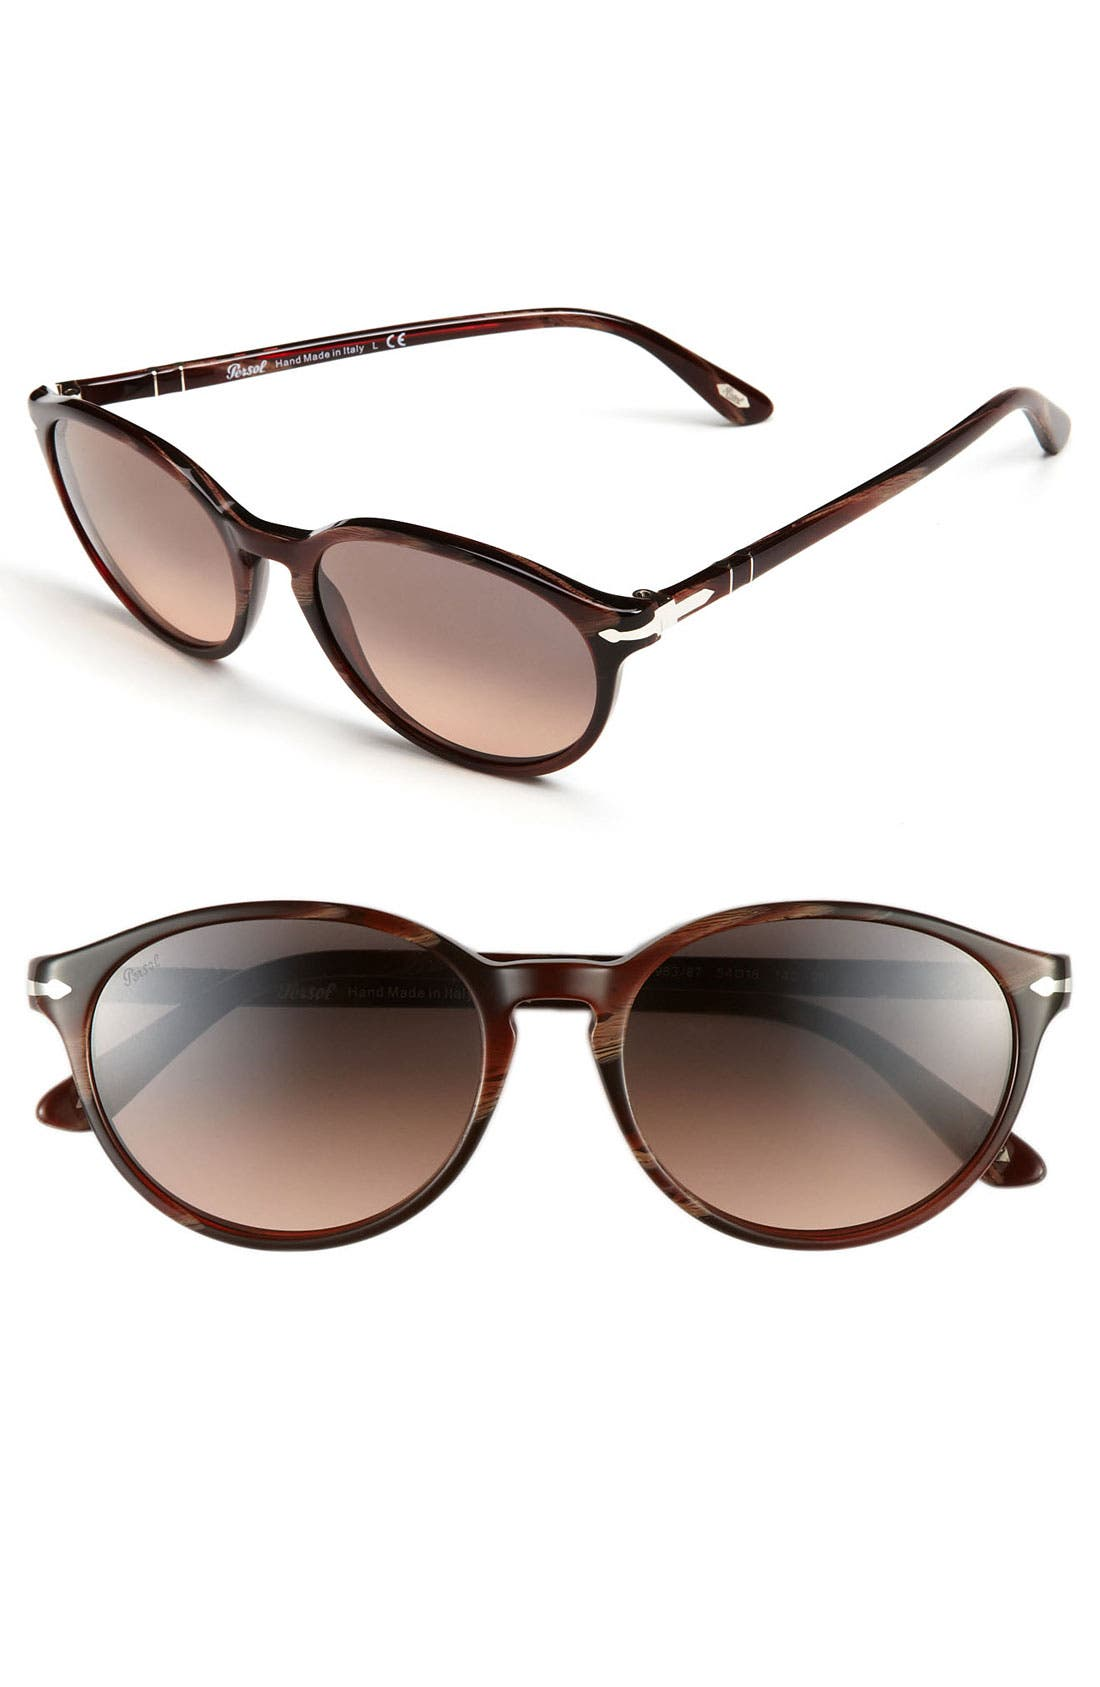 Alternate Image 1 Selected - Persol 51mm Keyhole Sunglasses